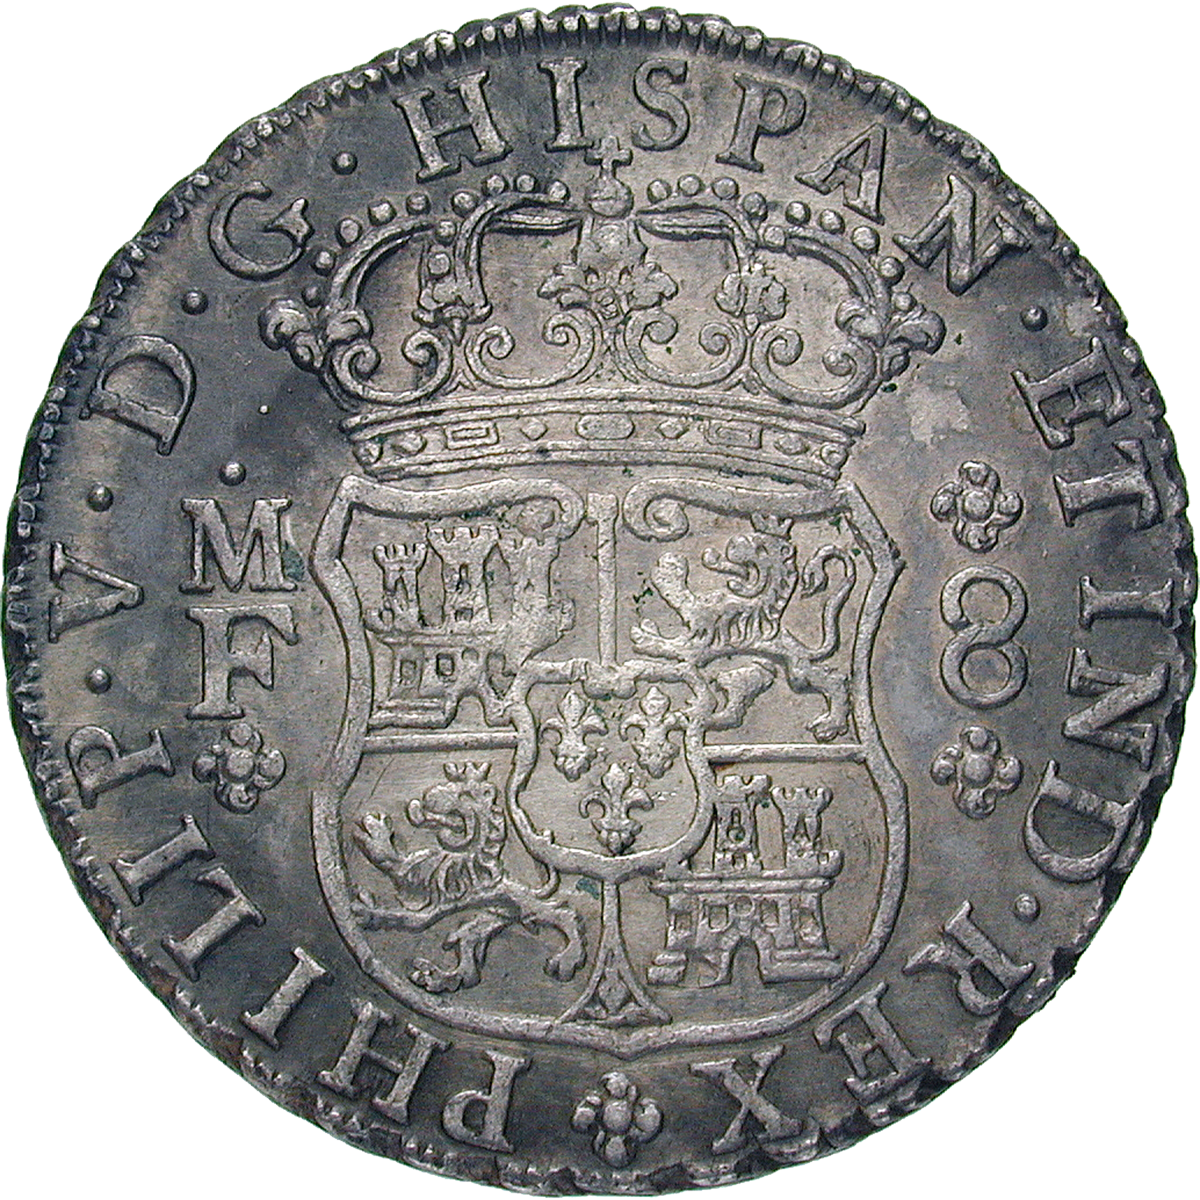 Viceroyalty of New Spain, Philip V, Real de a ocho (Peso) 1738 (obverse)